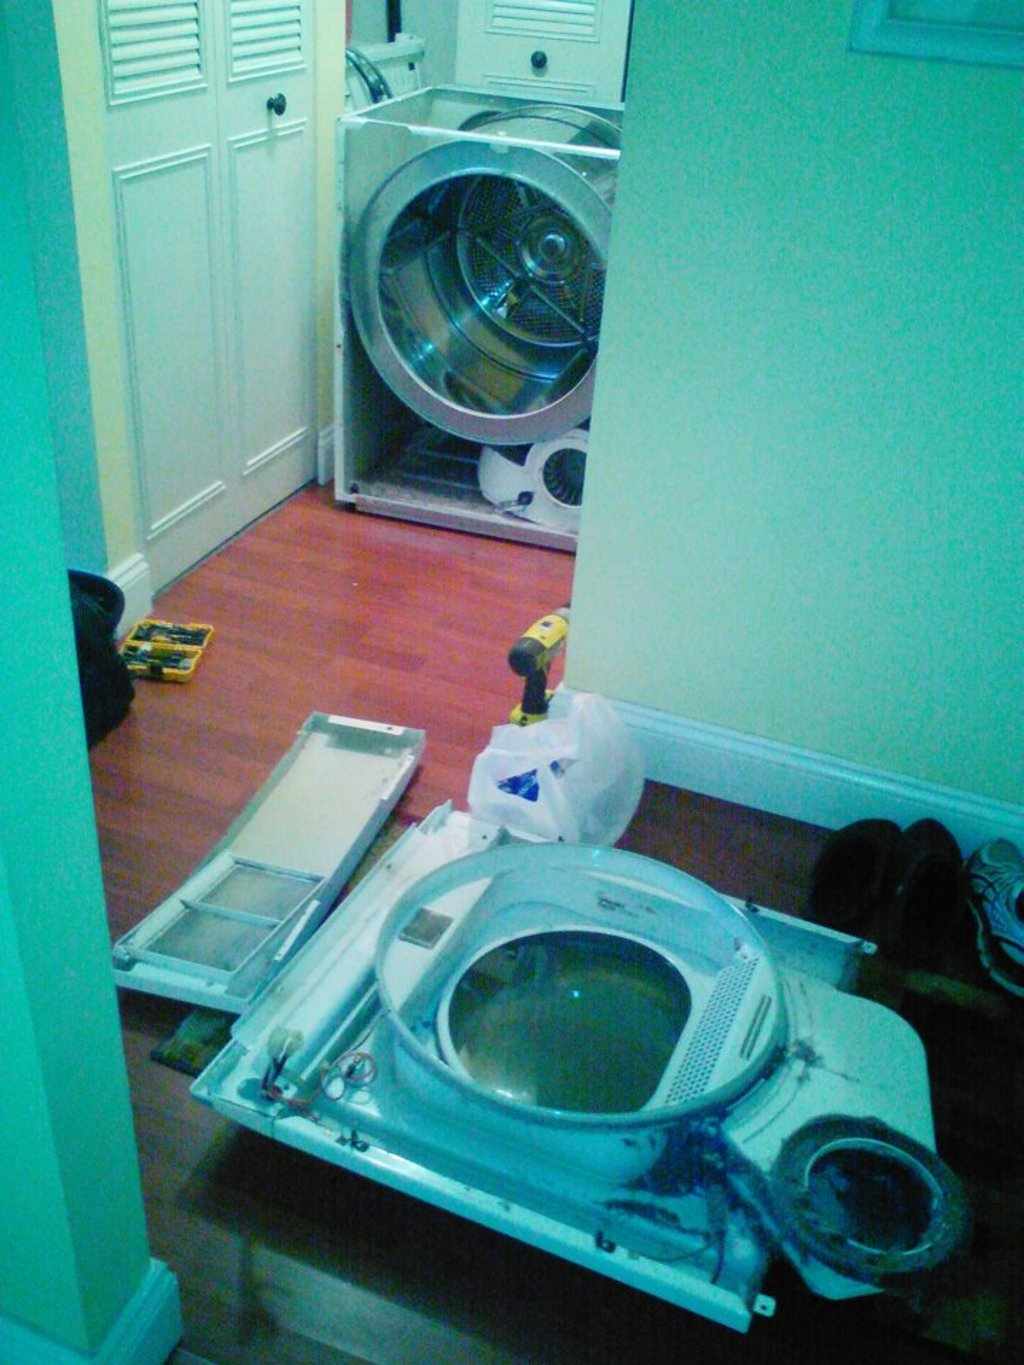 Advancetech Appliance Service - Washer and Dryer